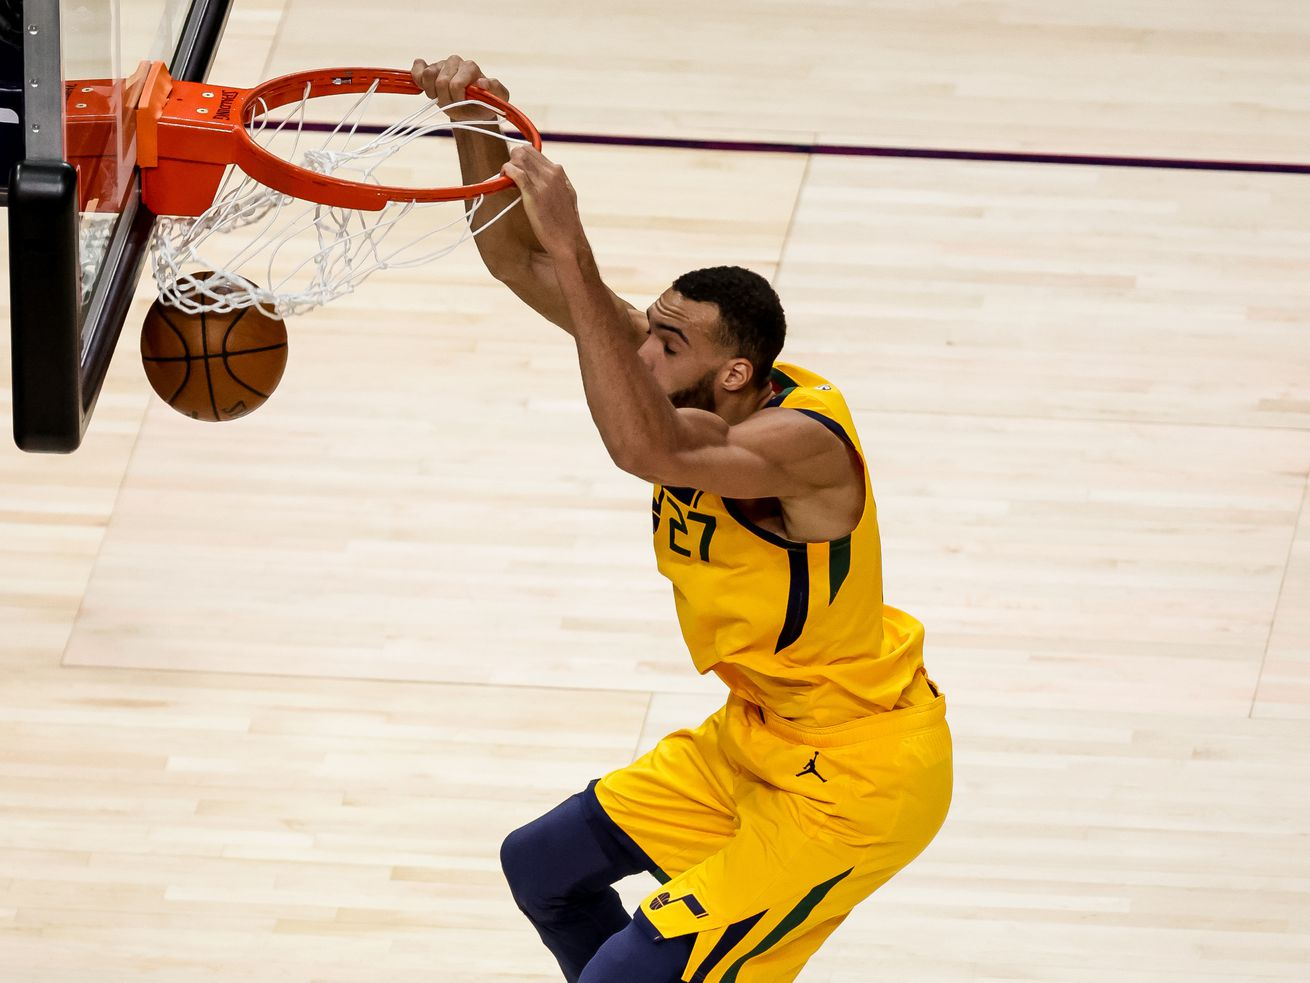 'Terrible' call on Rudy Gobert at end of Jazz-Pelicans was correct, NBA says